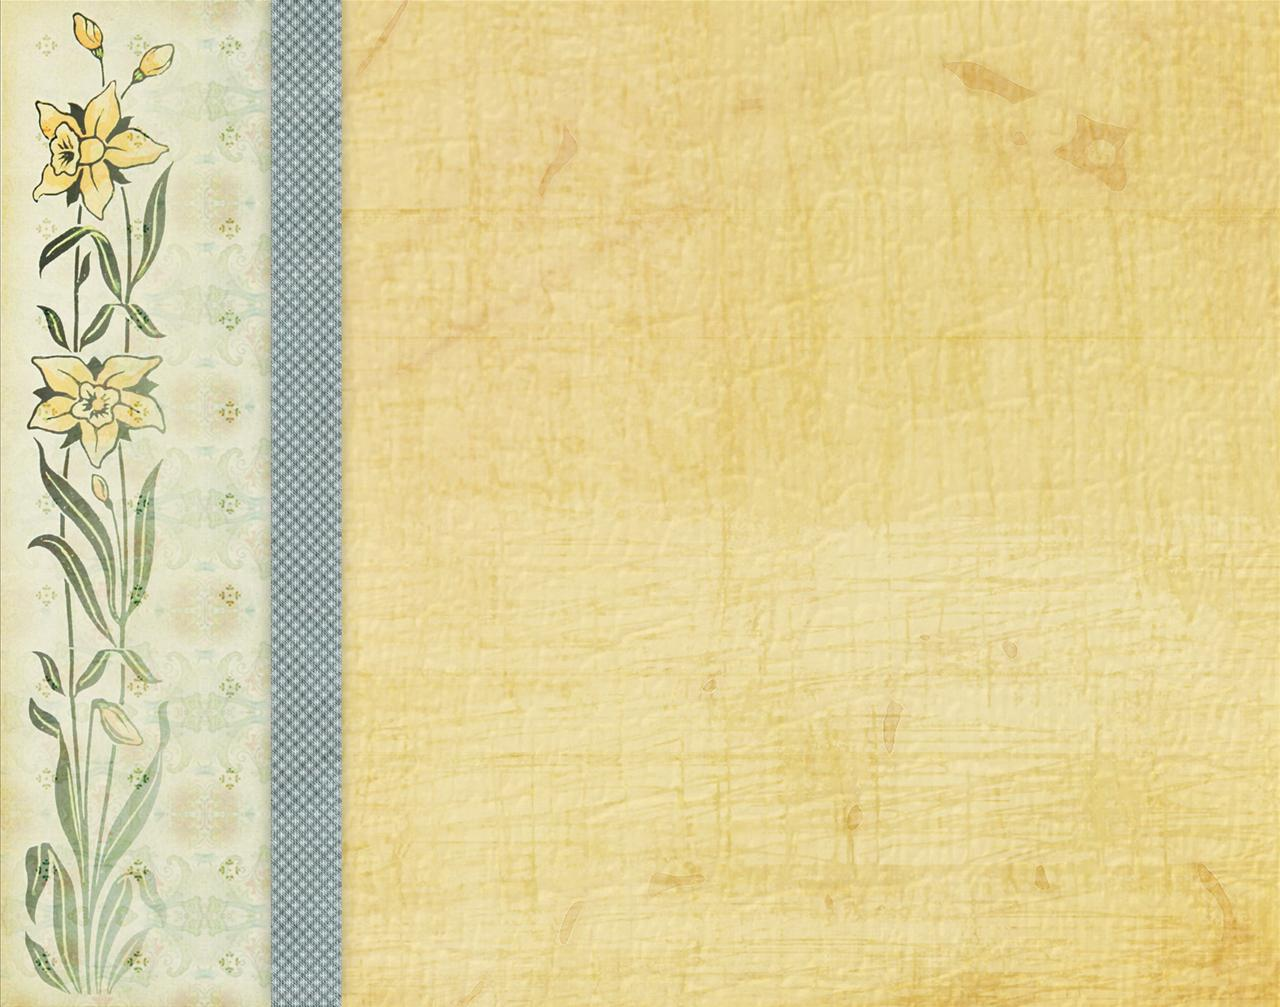 Daffodil Garden Backgrounds